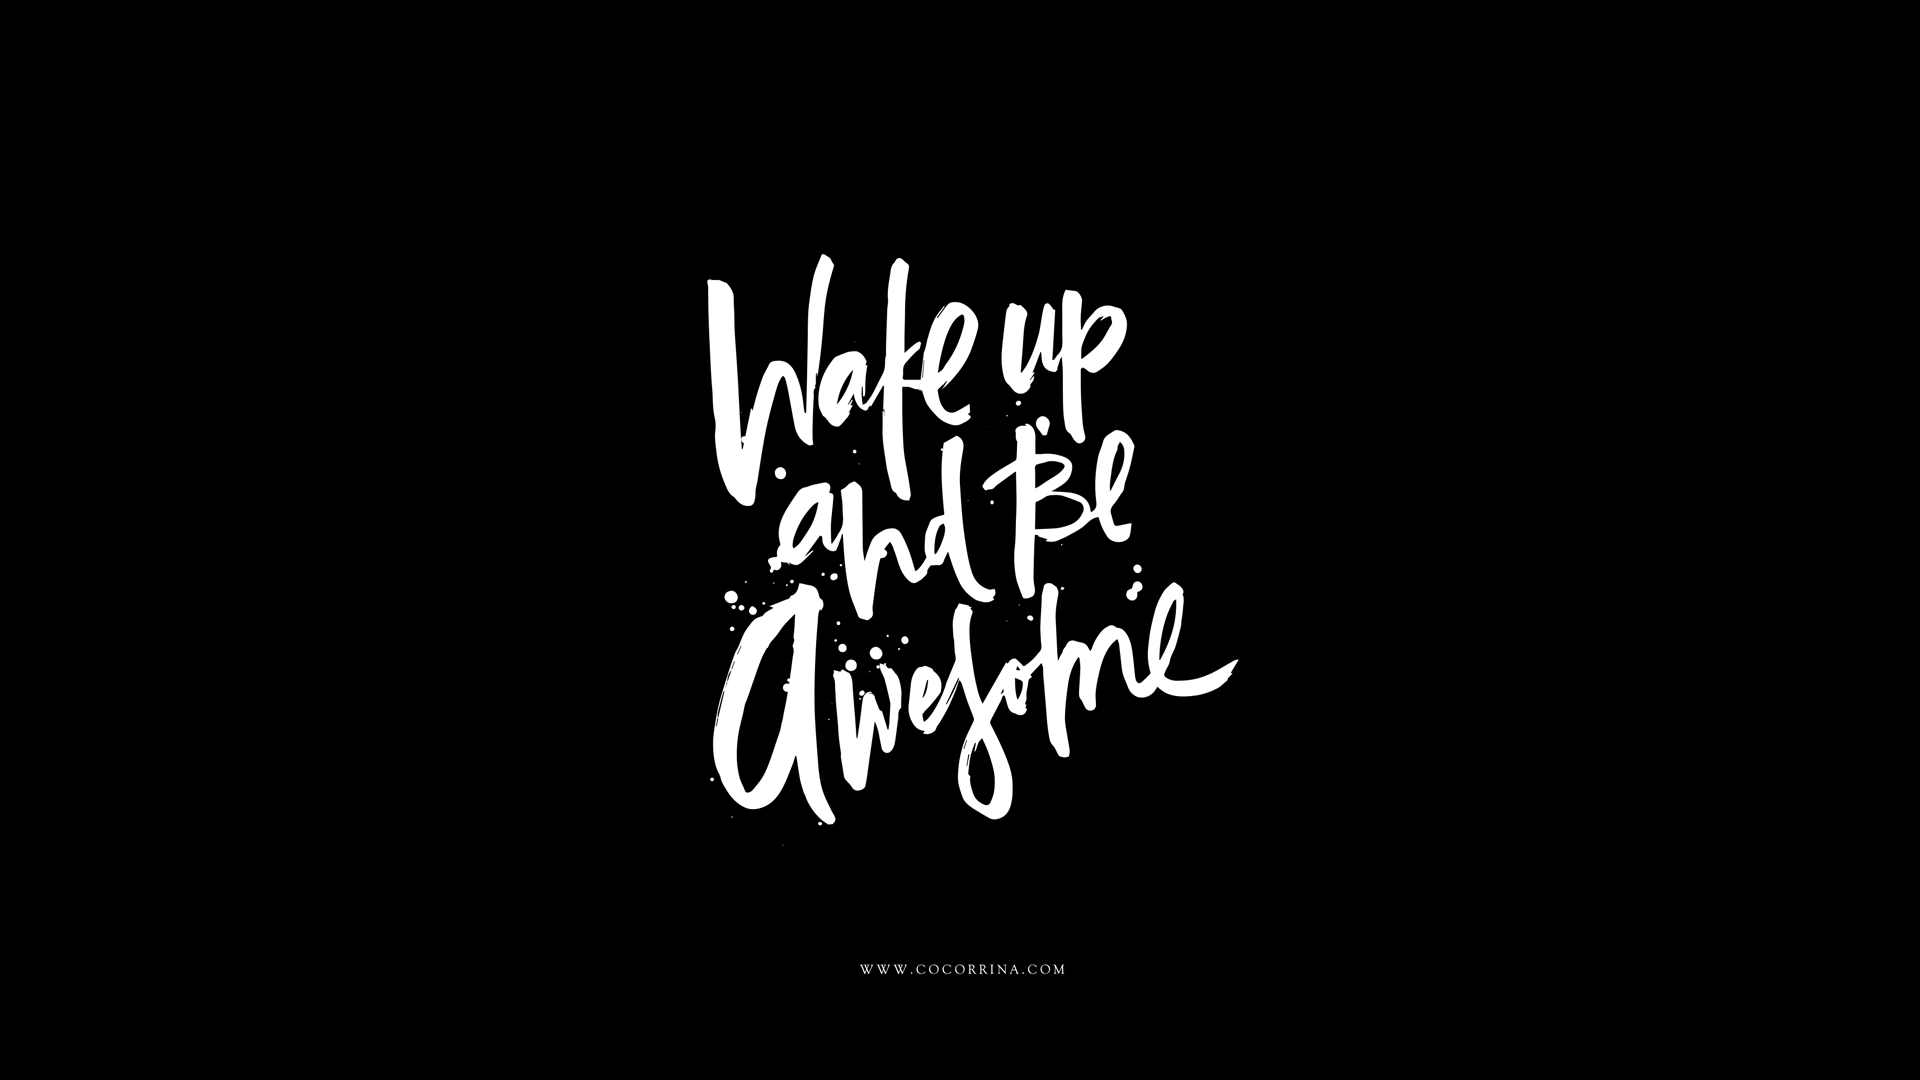 Calligraphy Wake Up Be Awesome Desktop Wallpaper Background